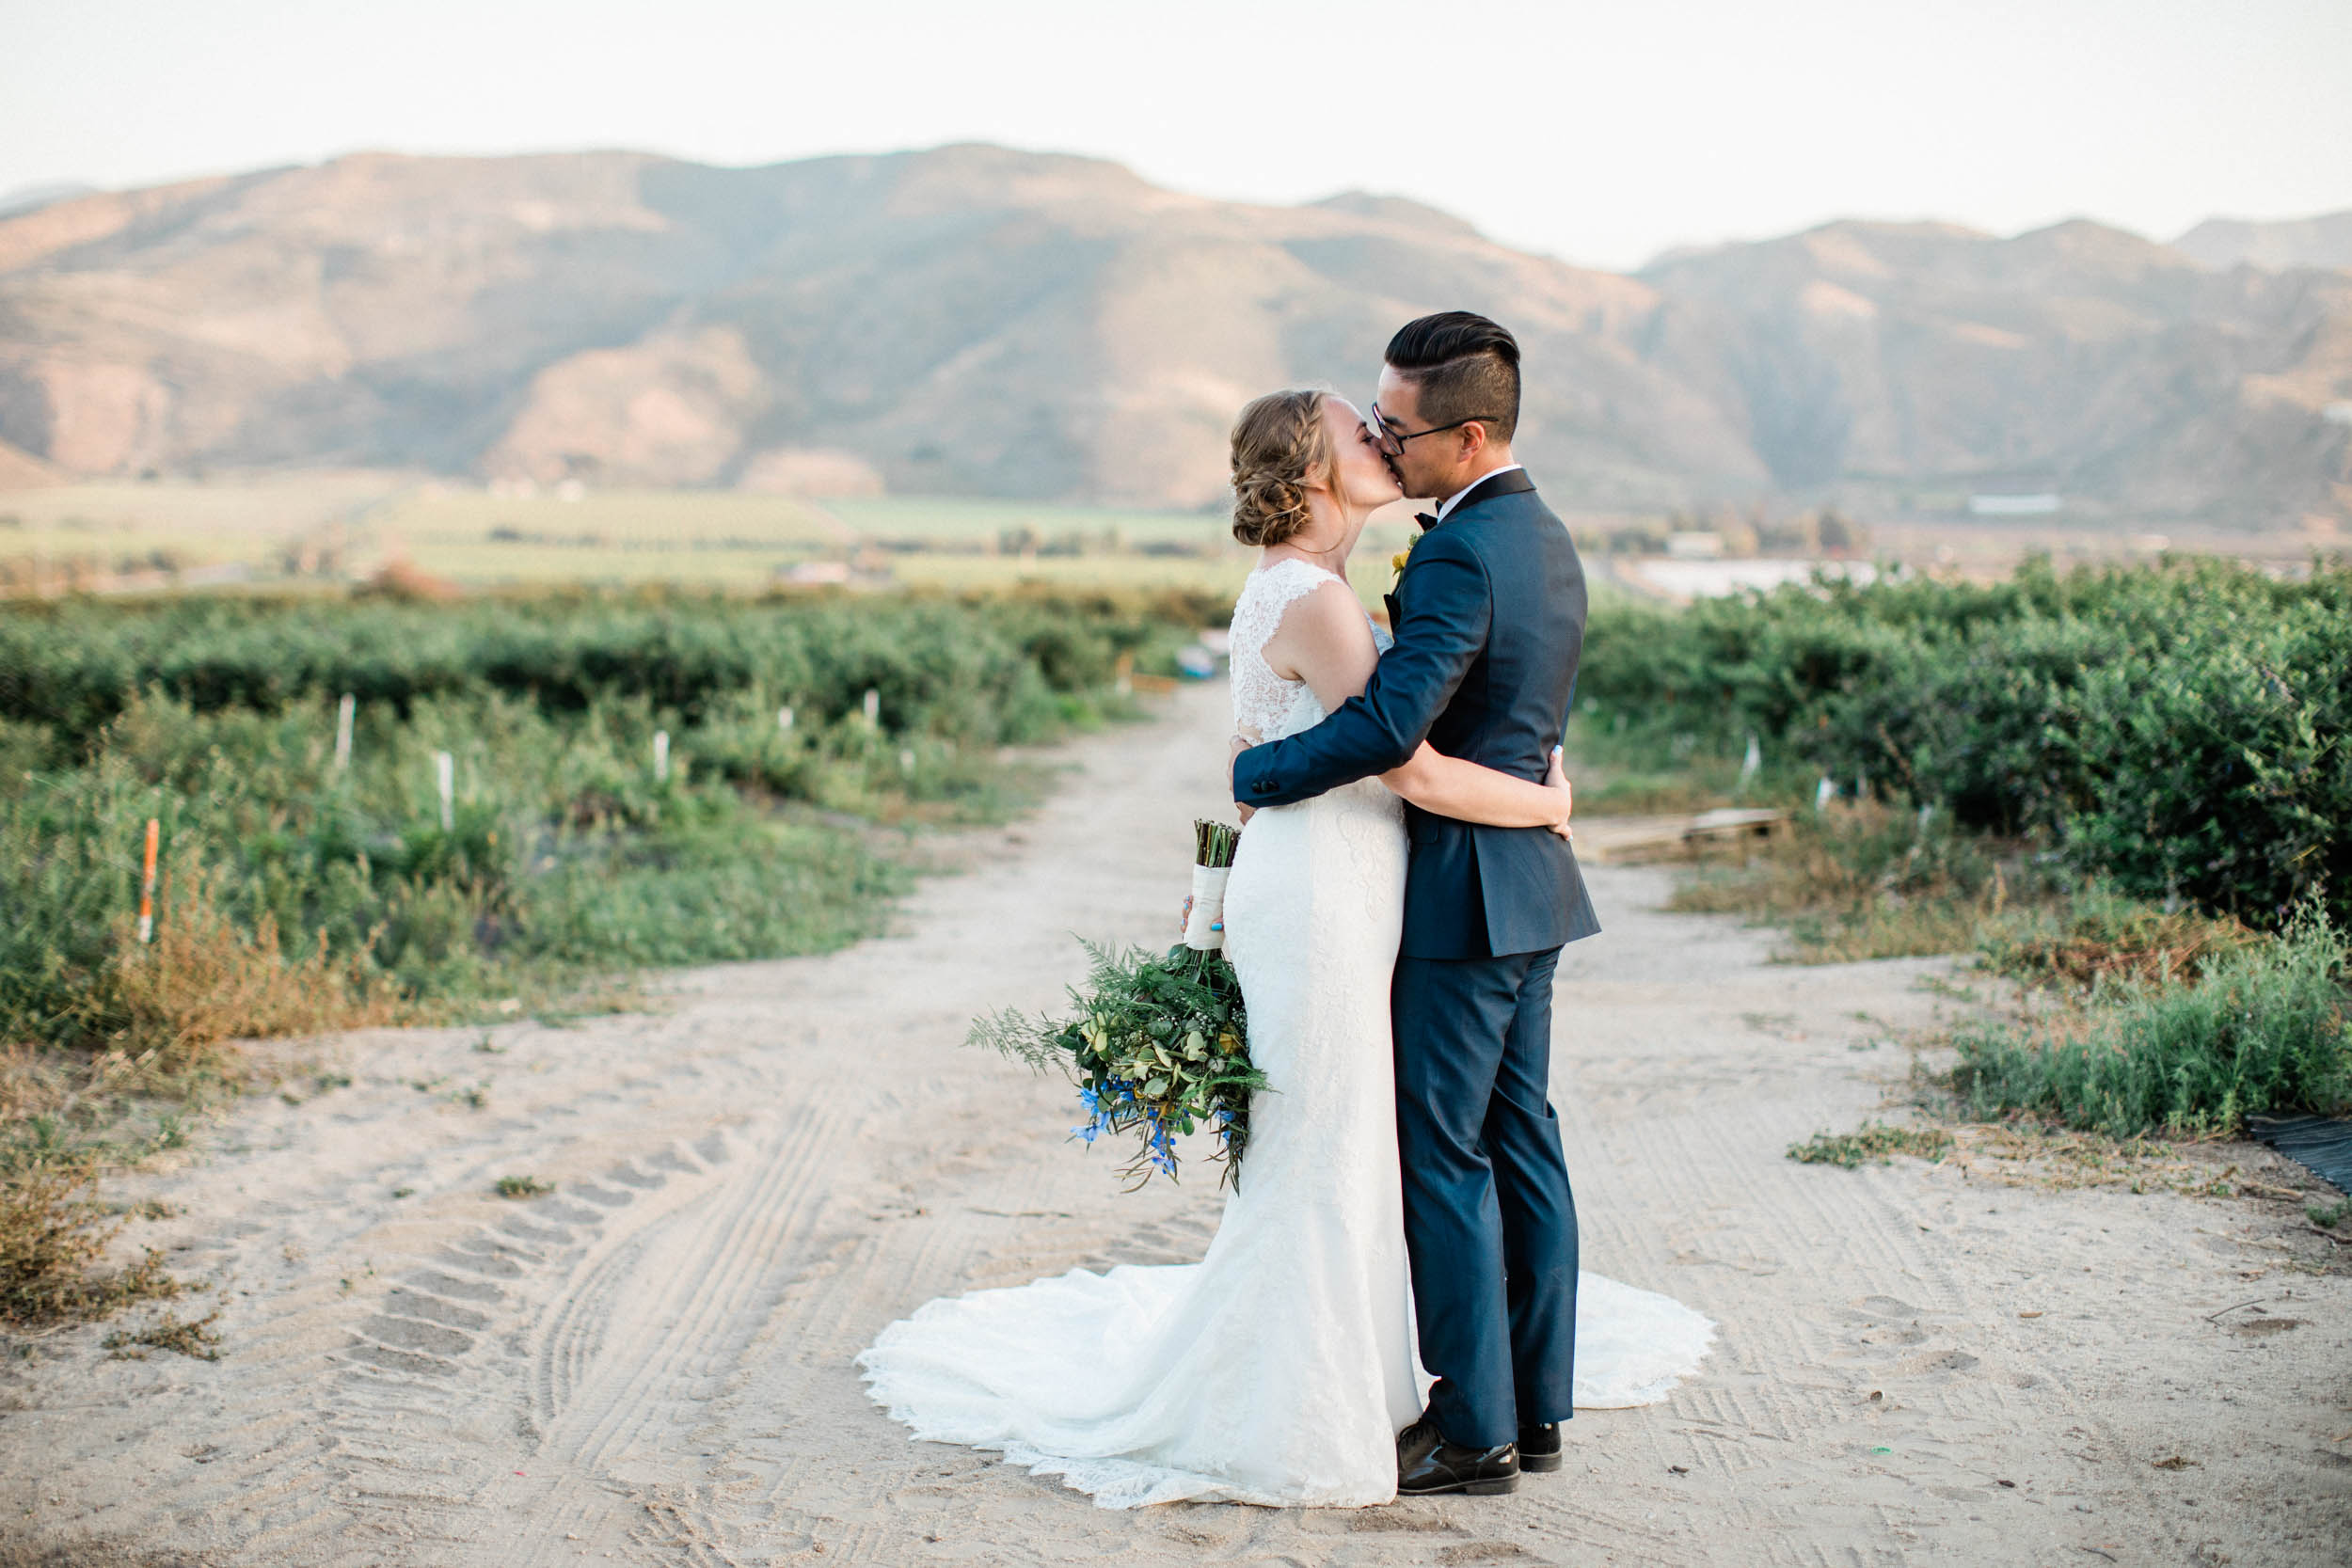 BKM-Photography-Gerry-Ranch-Southern-California-Wedding-0102.jpg